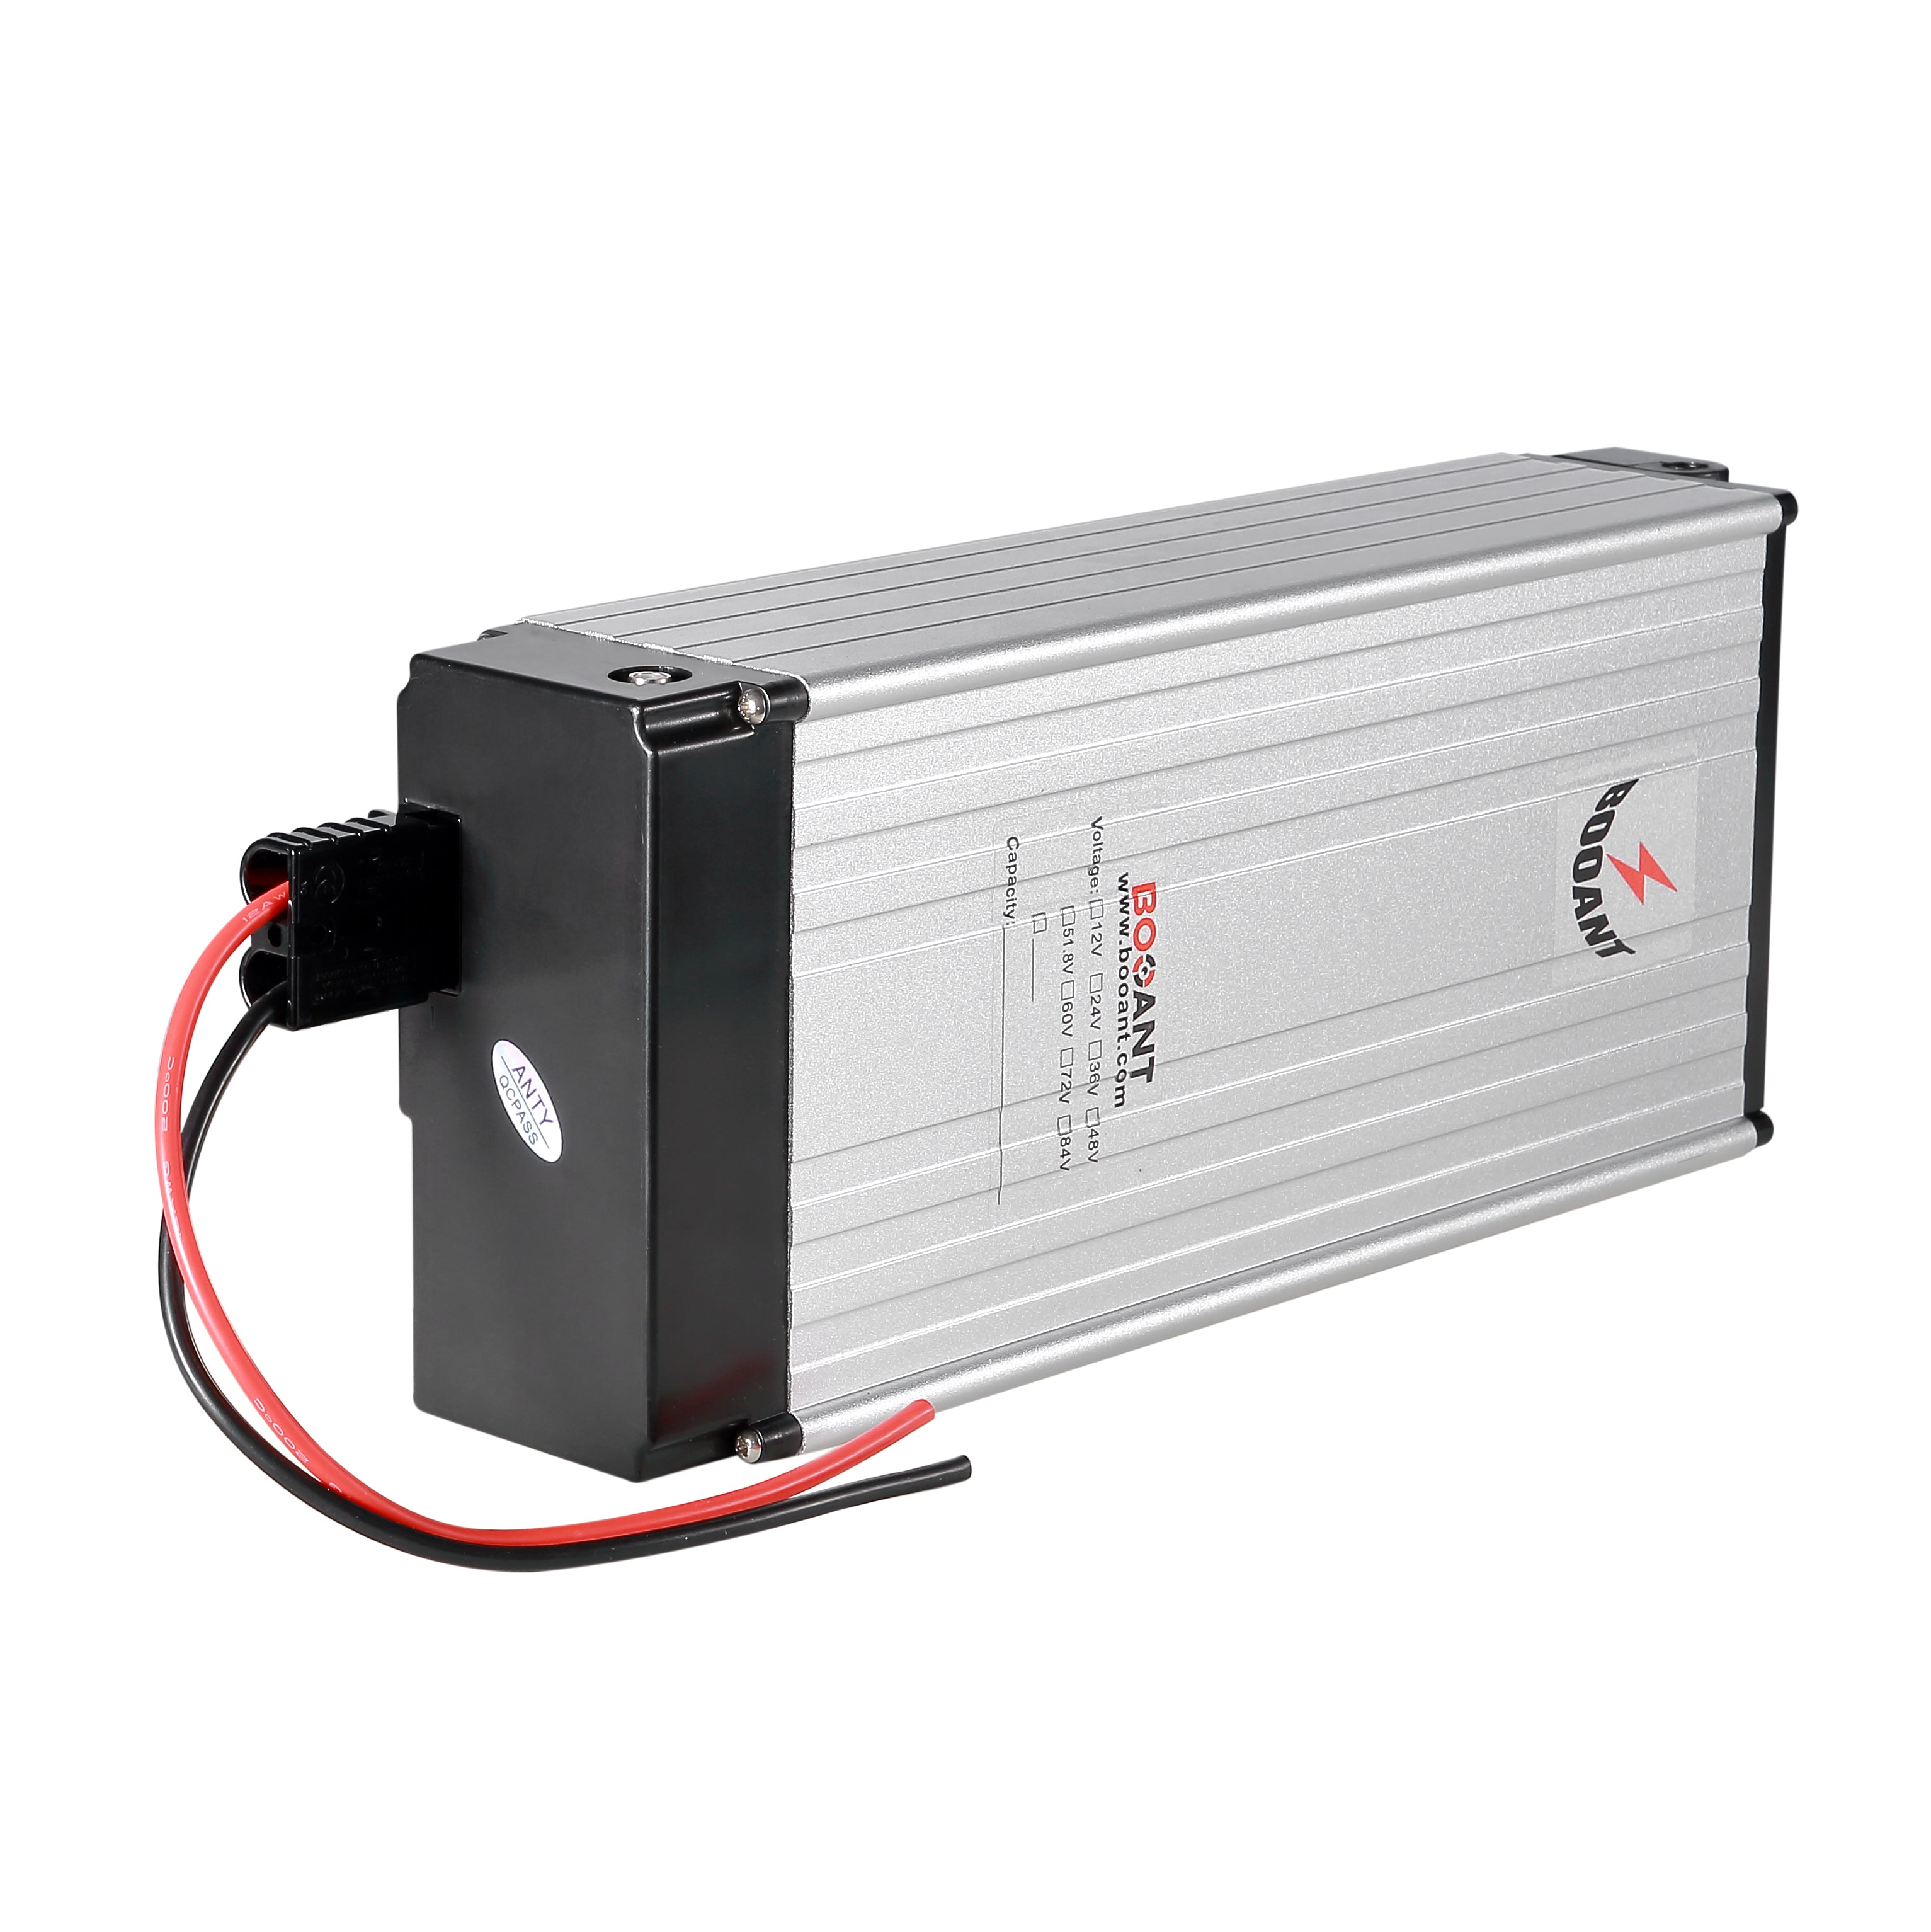 Booant 36V Rear Rack Electric Bike Battery 10S 30Ah 1500W Panasonic Lithium Ion Battery Pack 18650 with 5A Charger